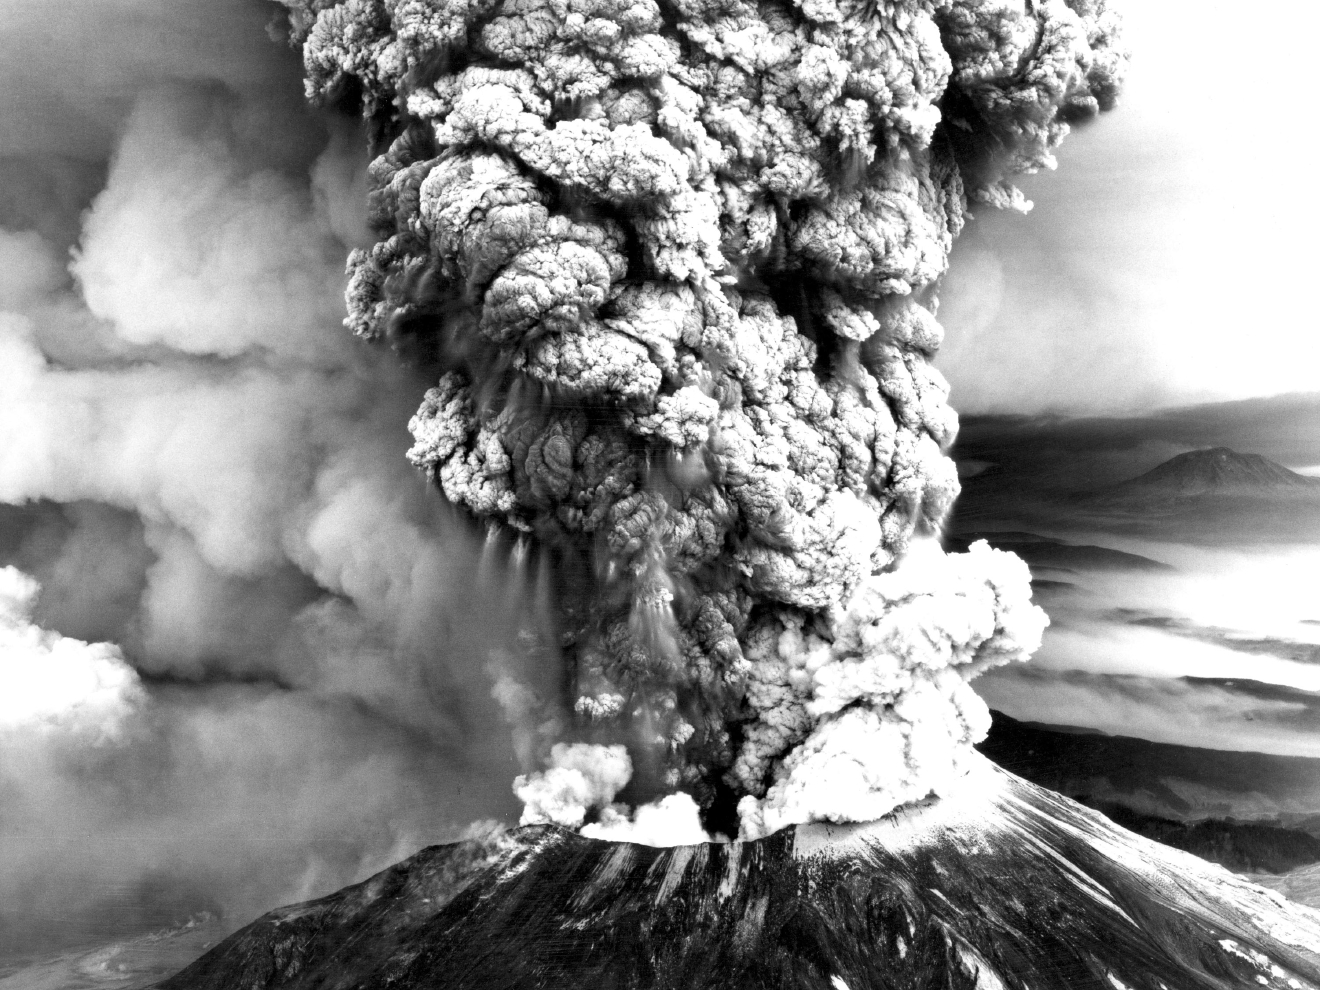 Mount St. Helens stood silent for over a century. Earthquakes swarmed the mountain in March 1980. Cracks appeared in the snow and ice atop the peak a few days later. And on March 27, the ash spewed from the top of the volcano.Geologists worked to study the peak as it rumbled back to life.What happened next caught the scientific community off guard.At 8:32 a.m. on May 18, 1980, a 5.1 earthquake shook the mountain.The mountain didn't erupt up; it erupted out to the side.The mountain went from 9,677 to 8,364 feet tall in an instant.All told, 57 people died or disappeared. (Robert Krimmell/USGS)